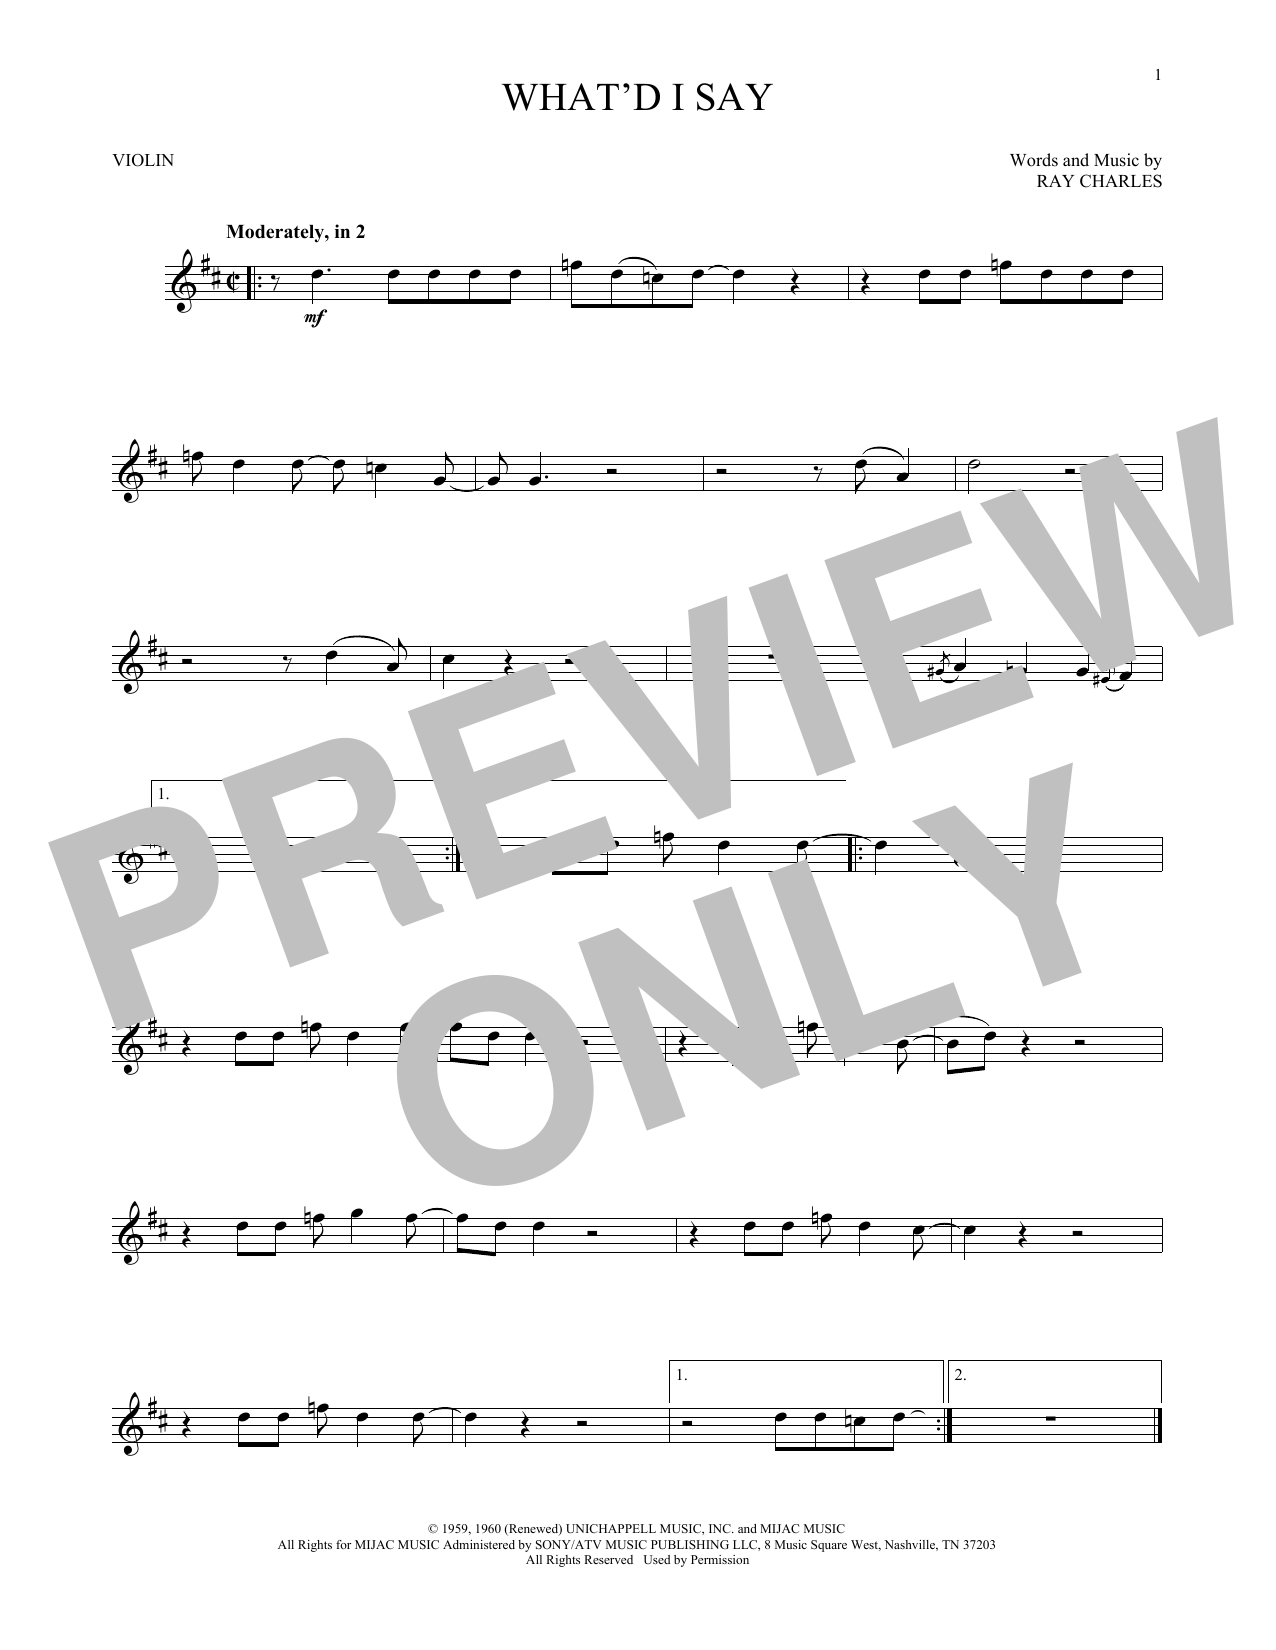 Annie lennox a whiter shade of pale sheet music at stantons ray charles hexwebz Choice Image